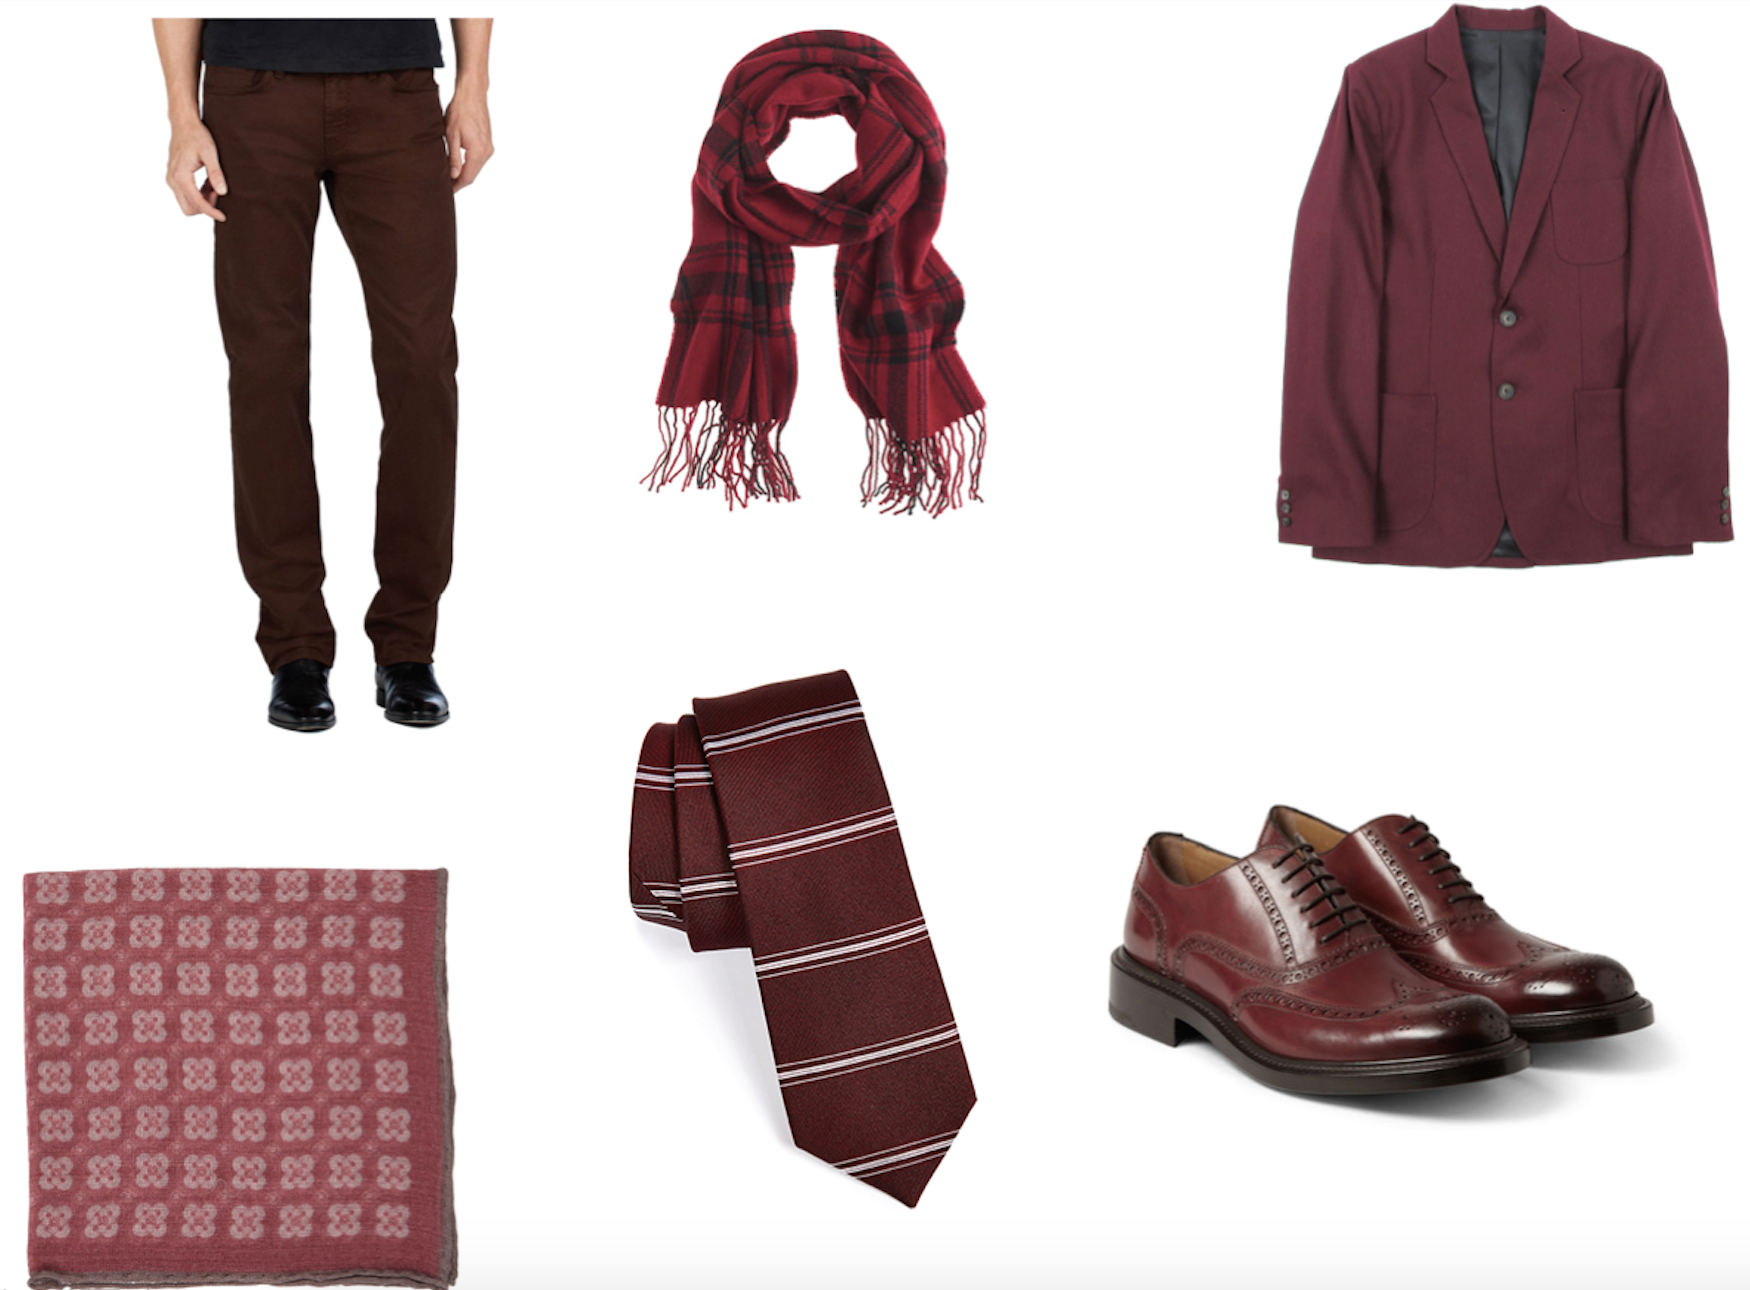 Marsala has been selected as the 2015 Pantone Color of the Year.